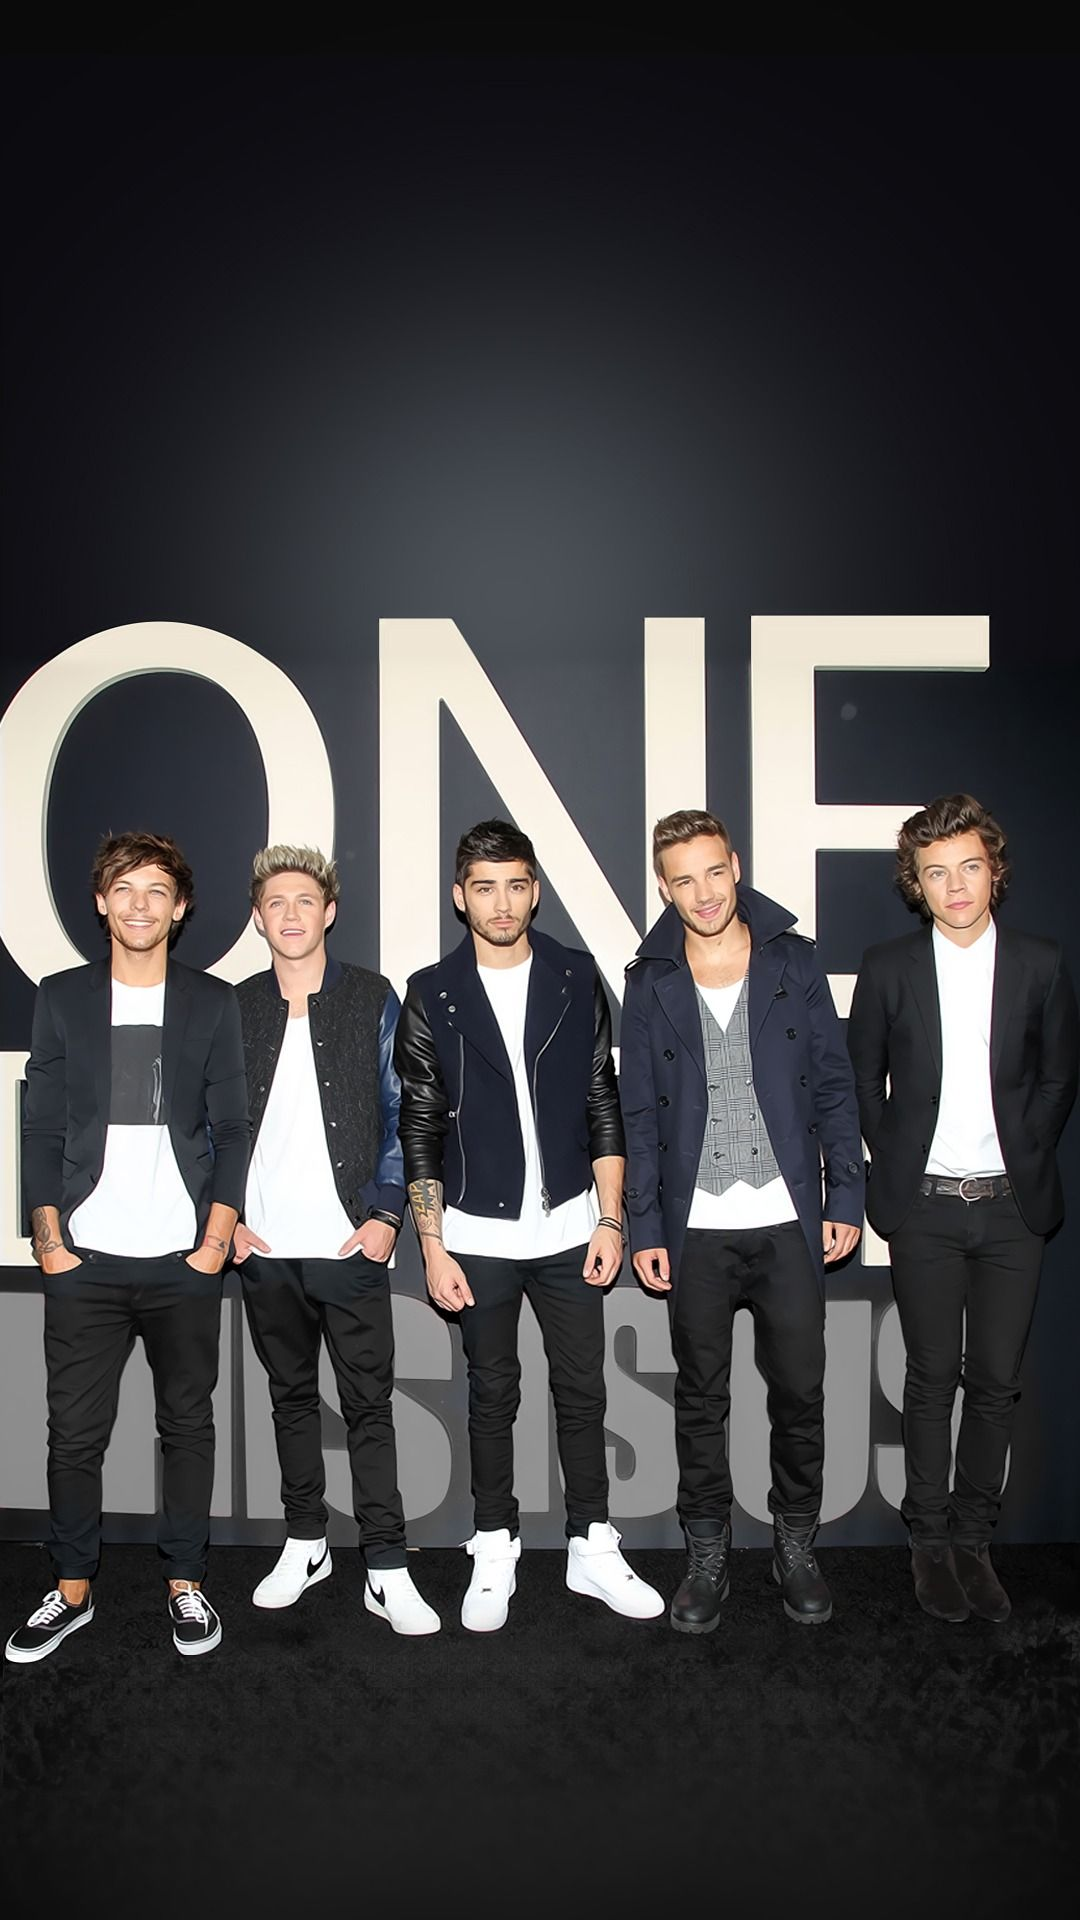 Pin By Megan Mann On One Direction One Direction Pictures One Direction One Direction Images